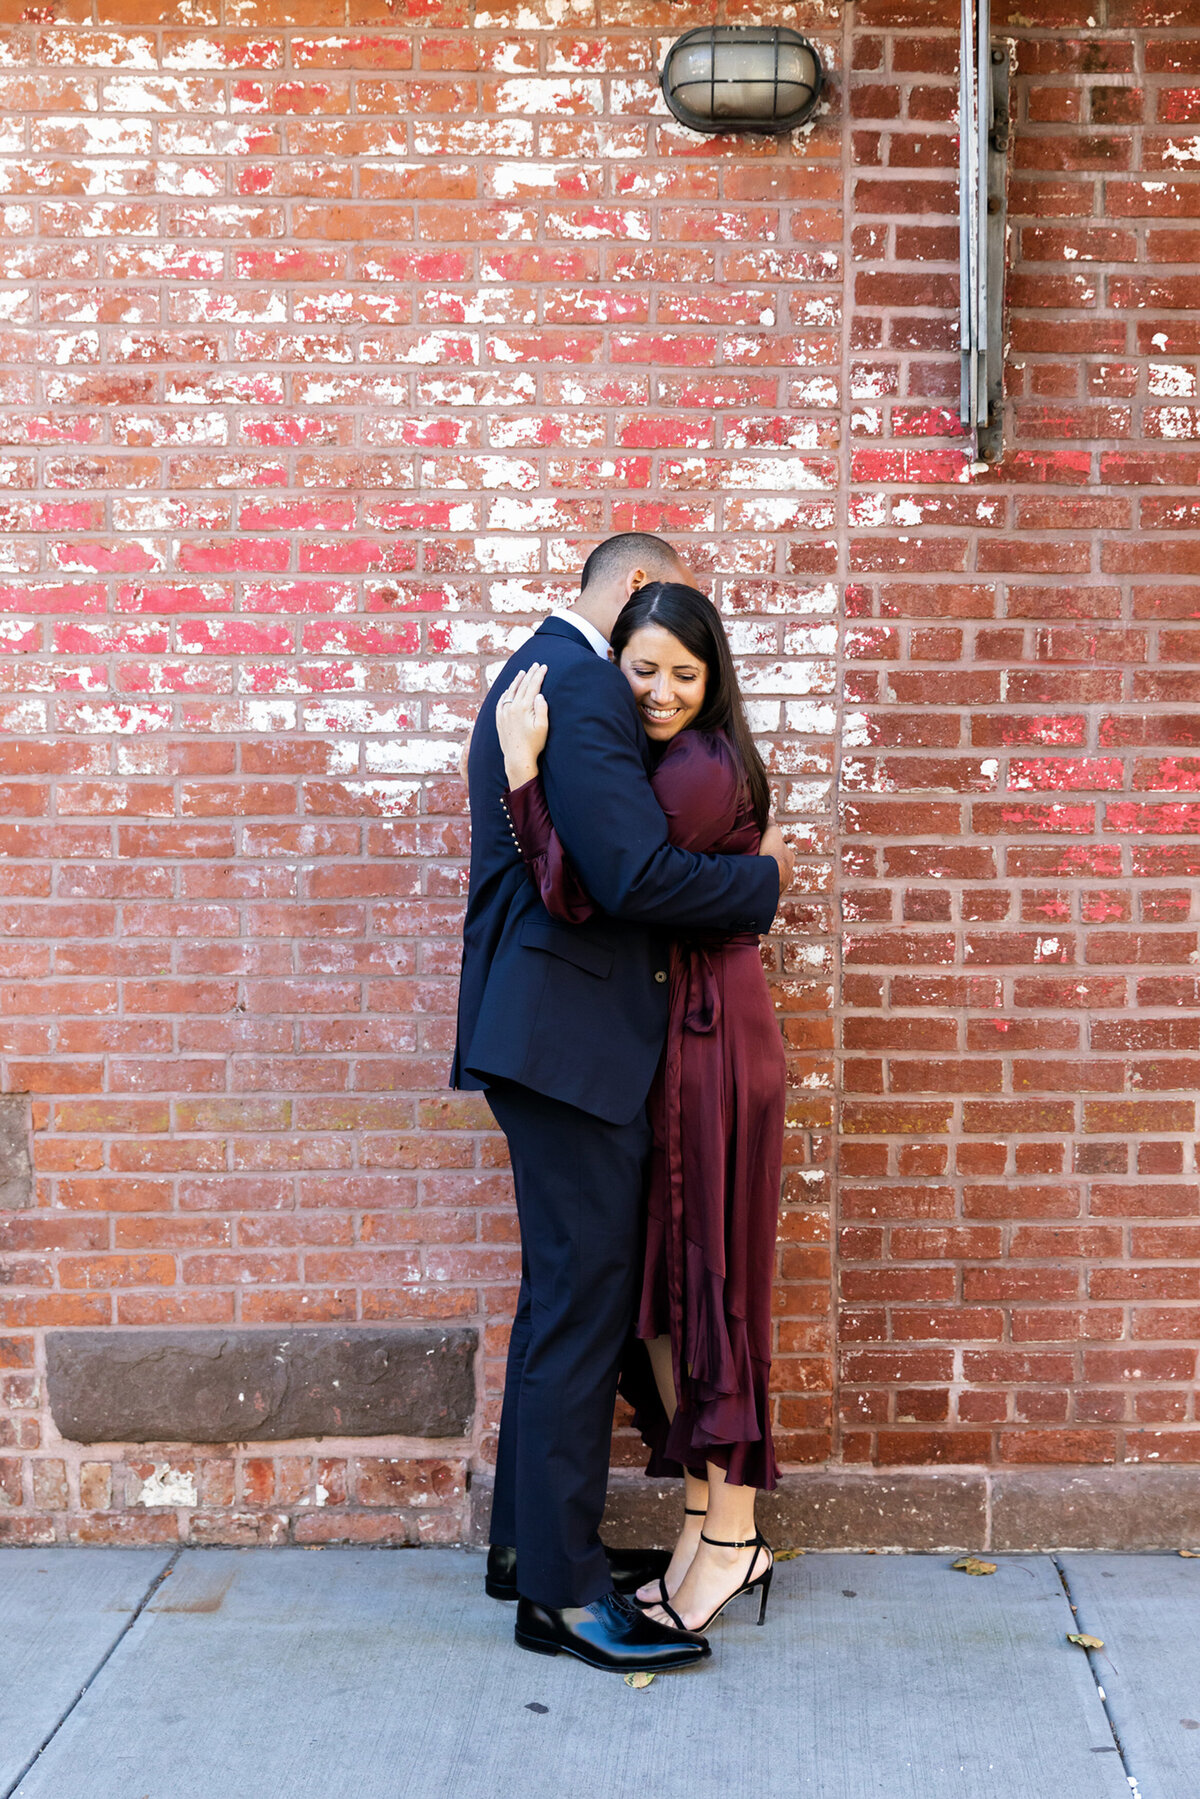 Highline_NYC_Zoey_Travis_Engagement_1453